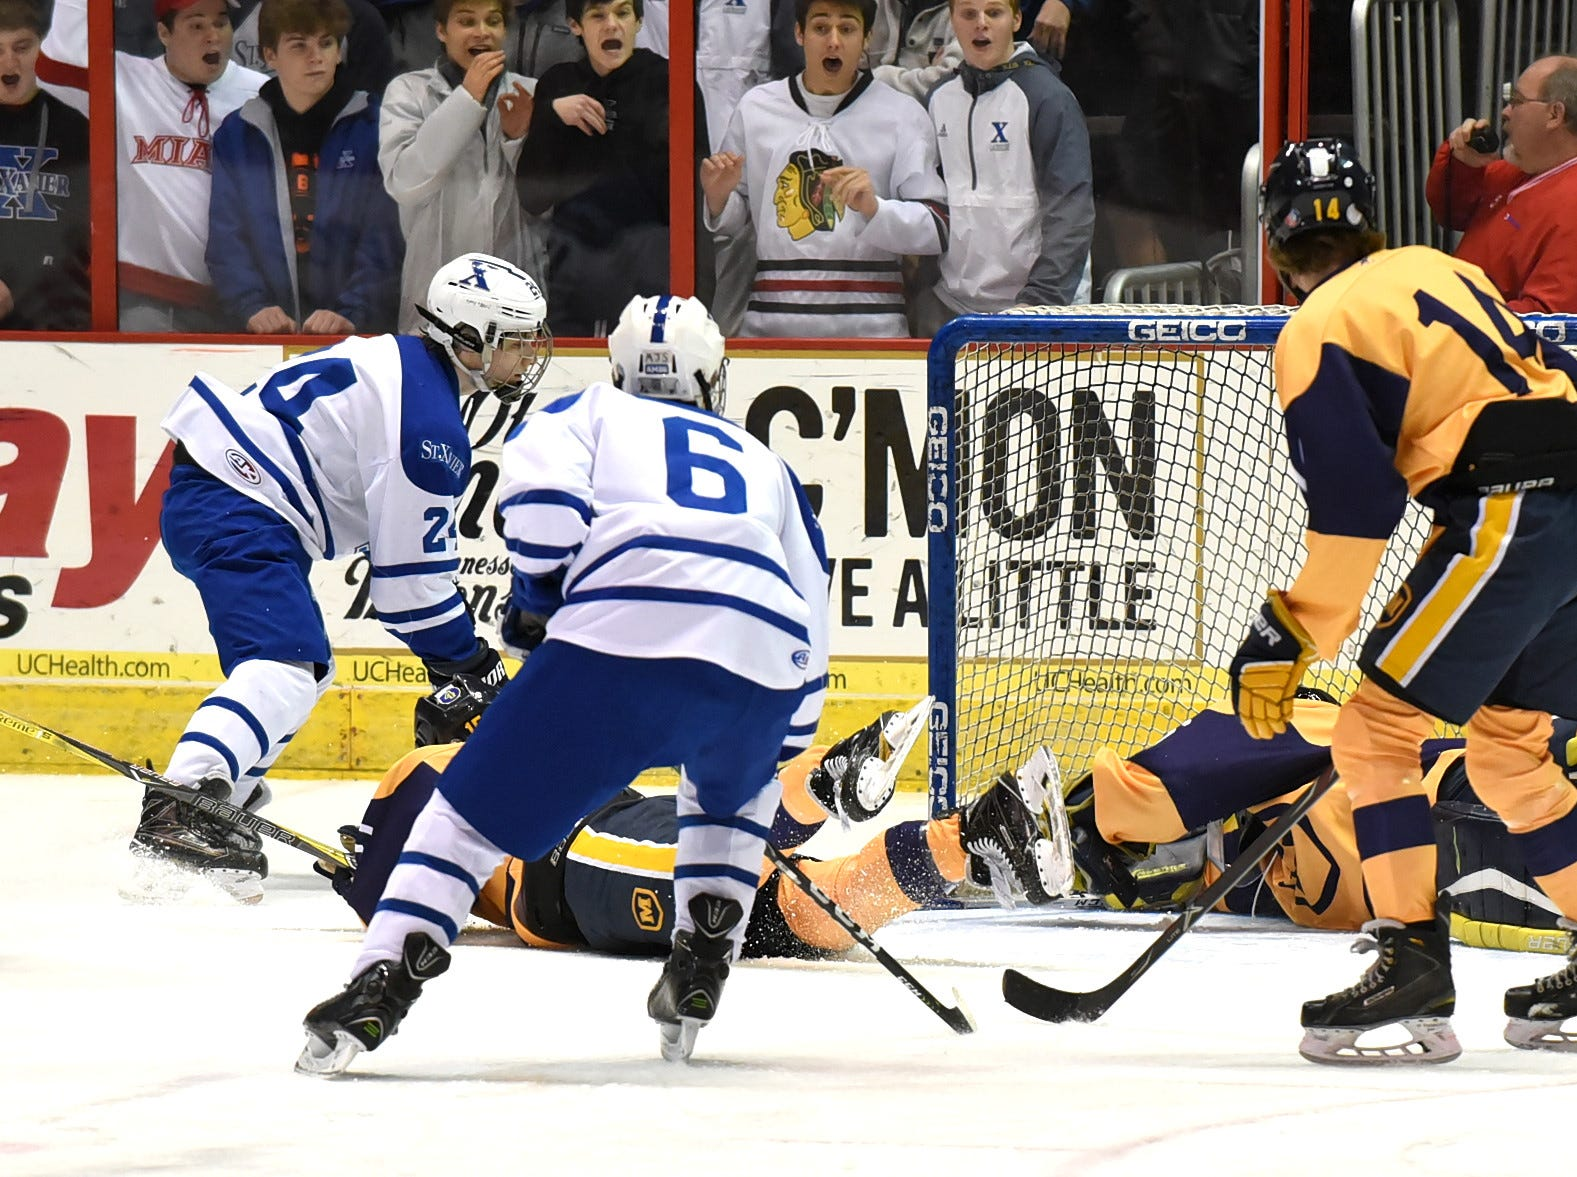 Jake Anding (24) sneaks the puck in the back corner of the goal for a St. Xavier goal at US Bank Arena, December 7, 2018.